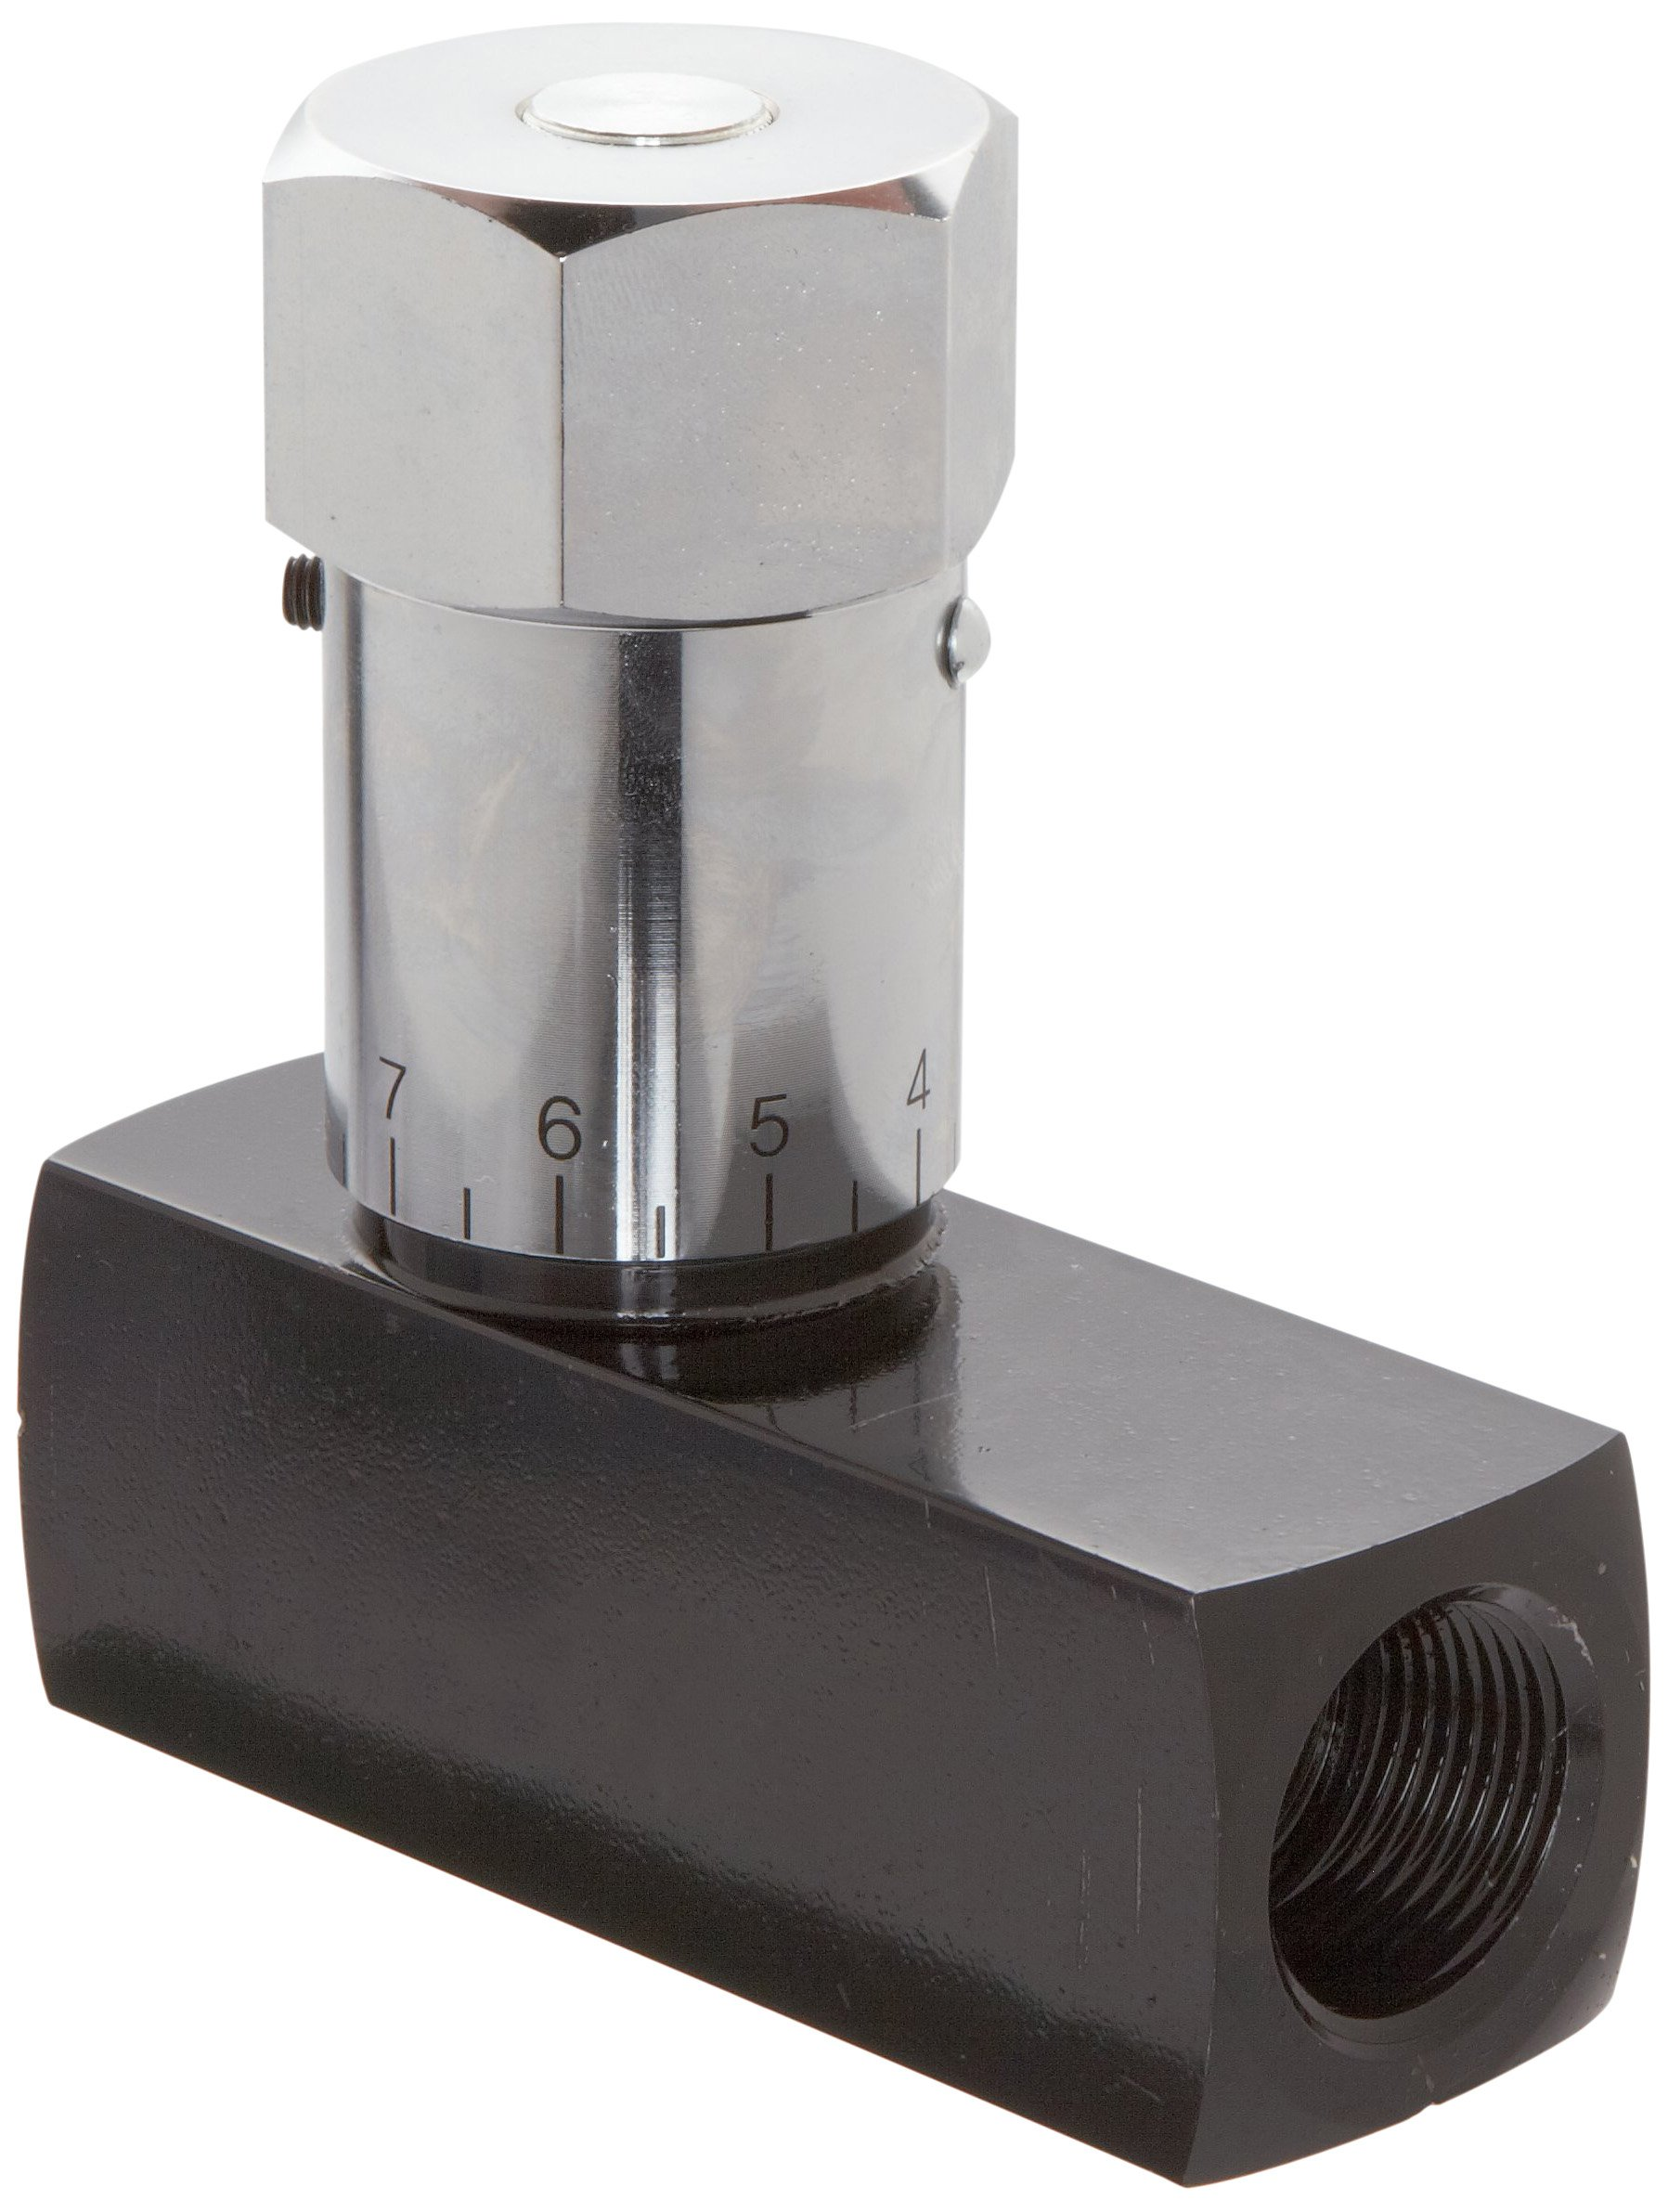 In-Line Prince WNV-800 Wolverine Needle Valve 16 gpm Max Flow 1//2 NPTF Carbon Steel